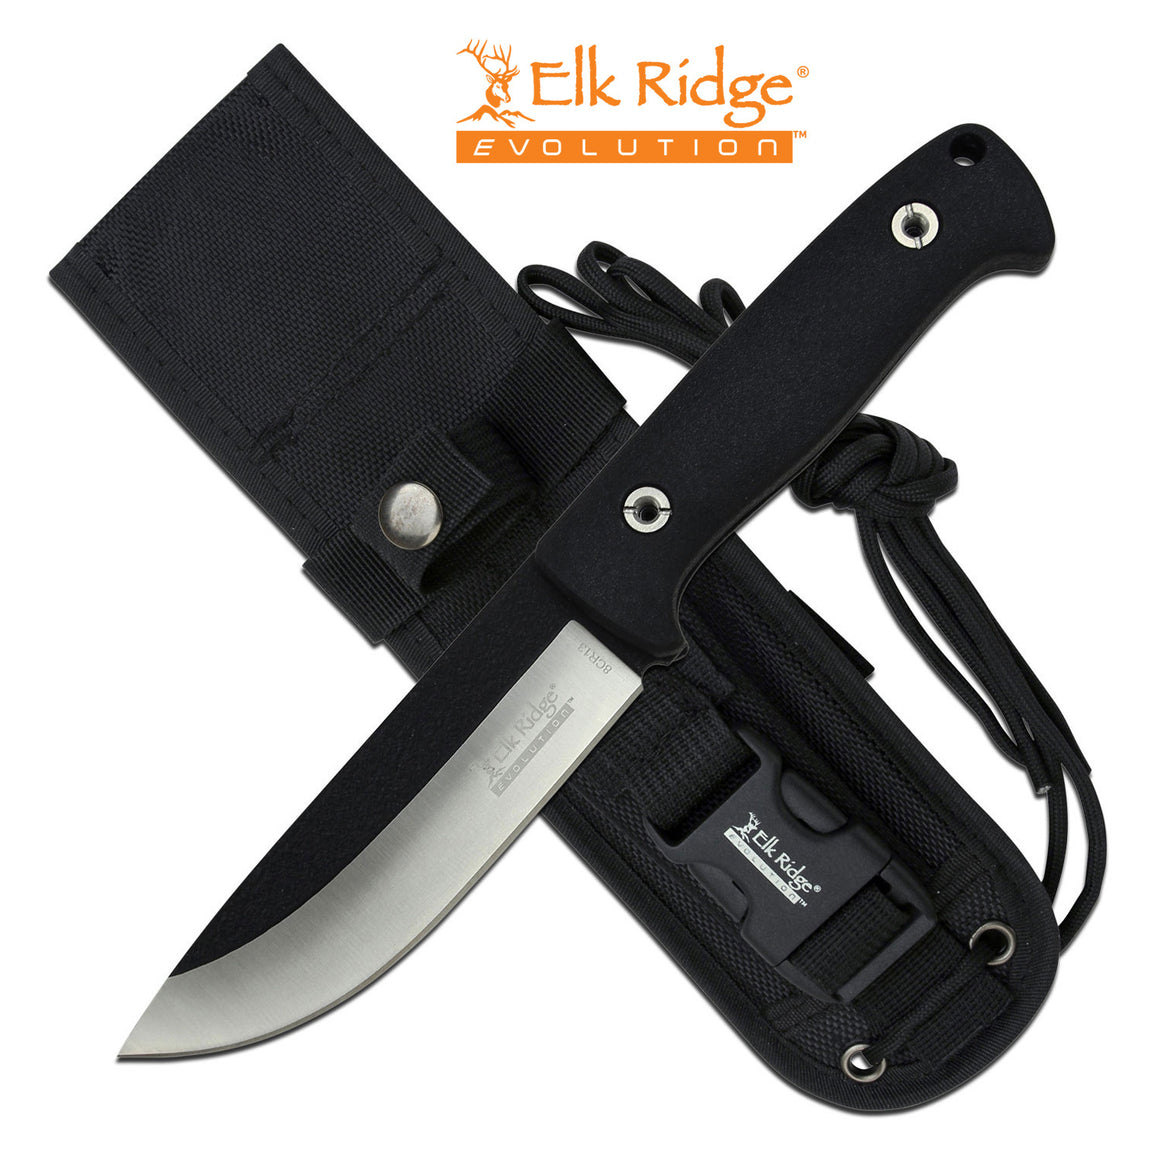 Elk Ridge Evolution ERE-FIX001-BK Fixed Blade Knife